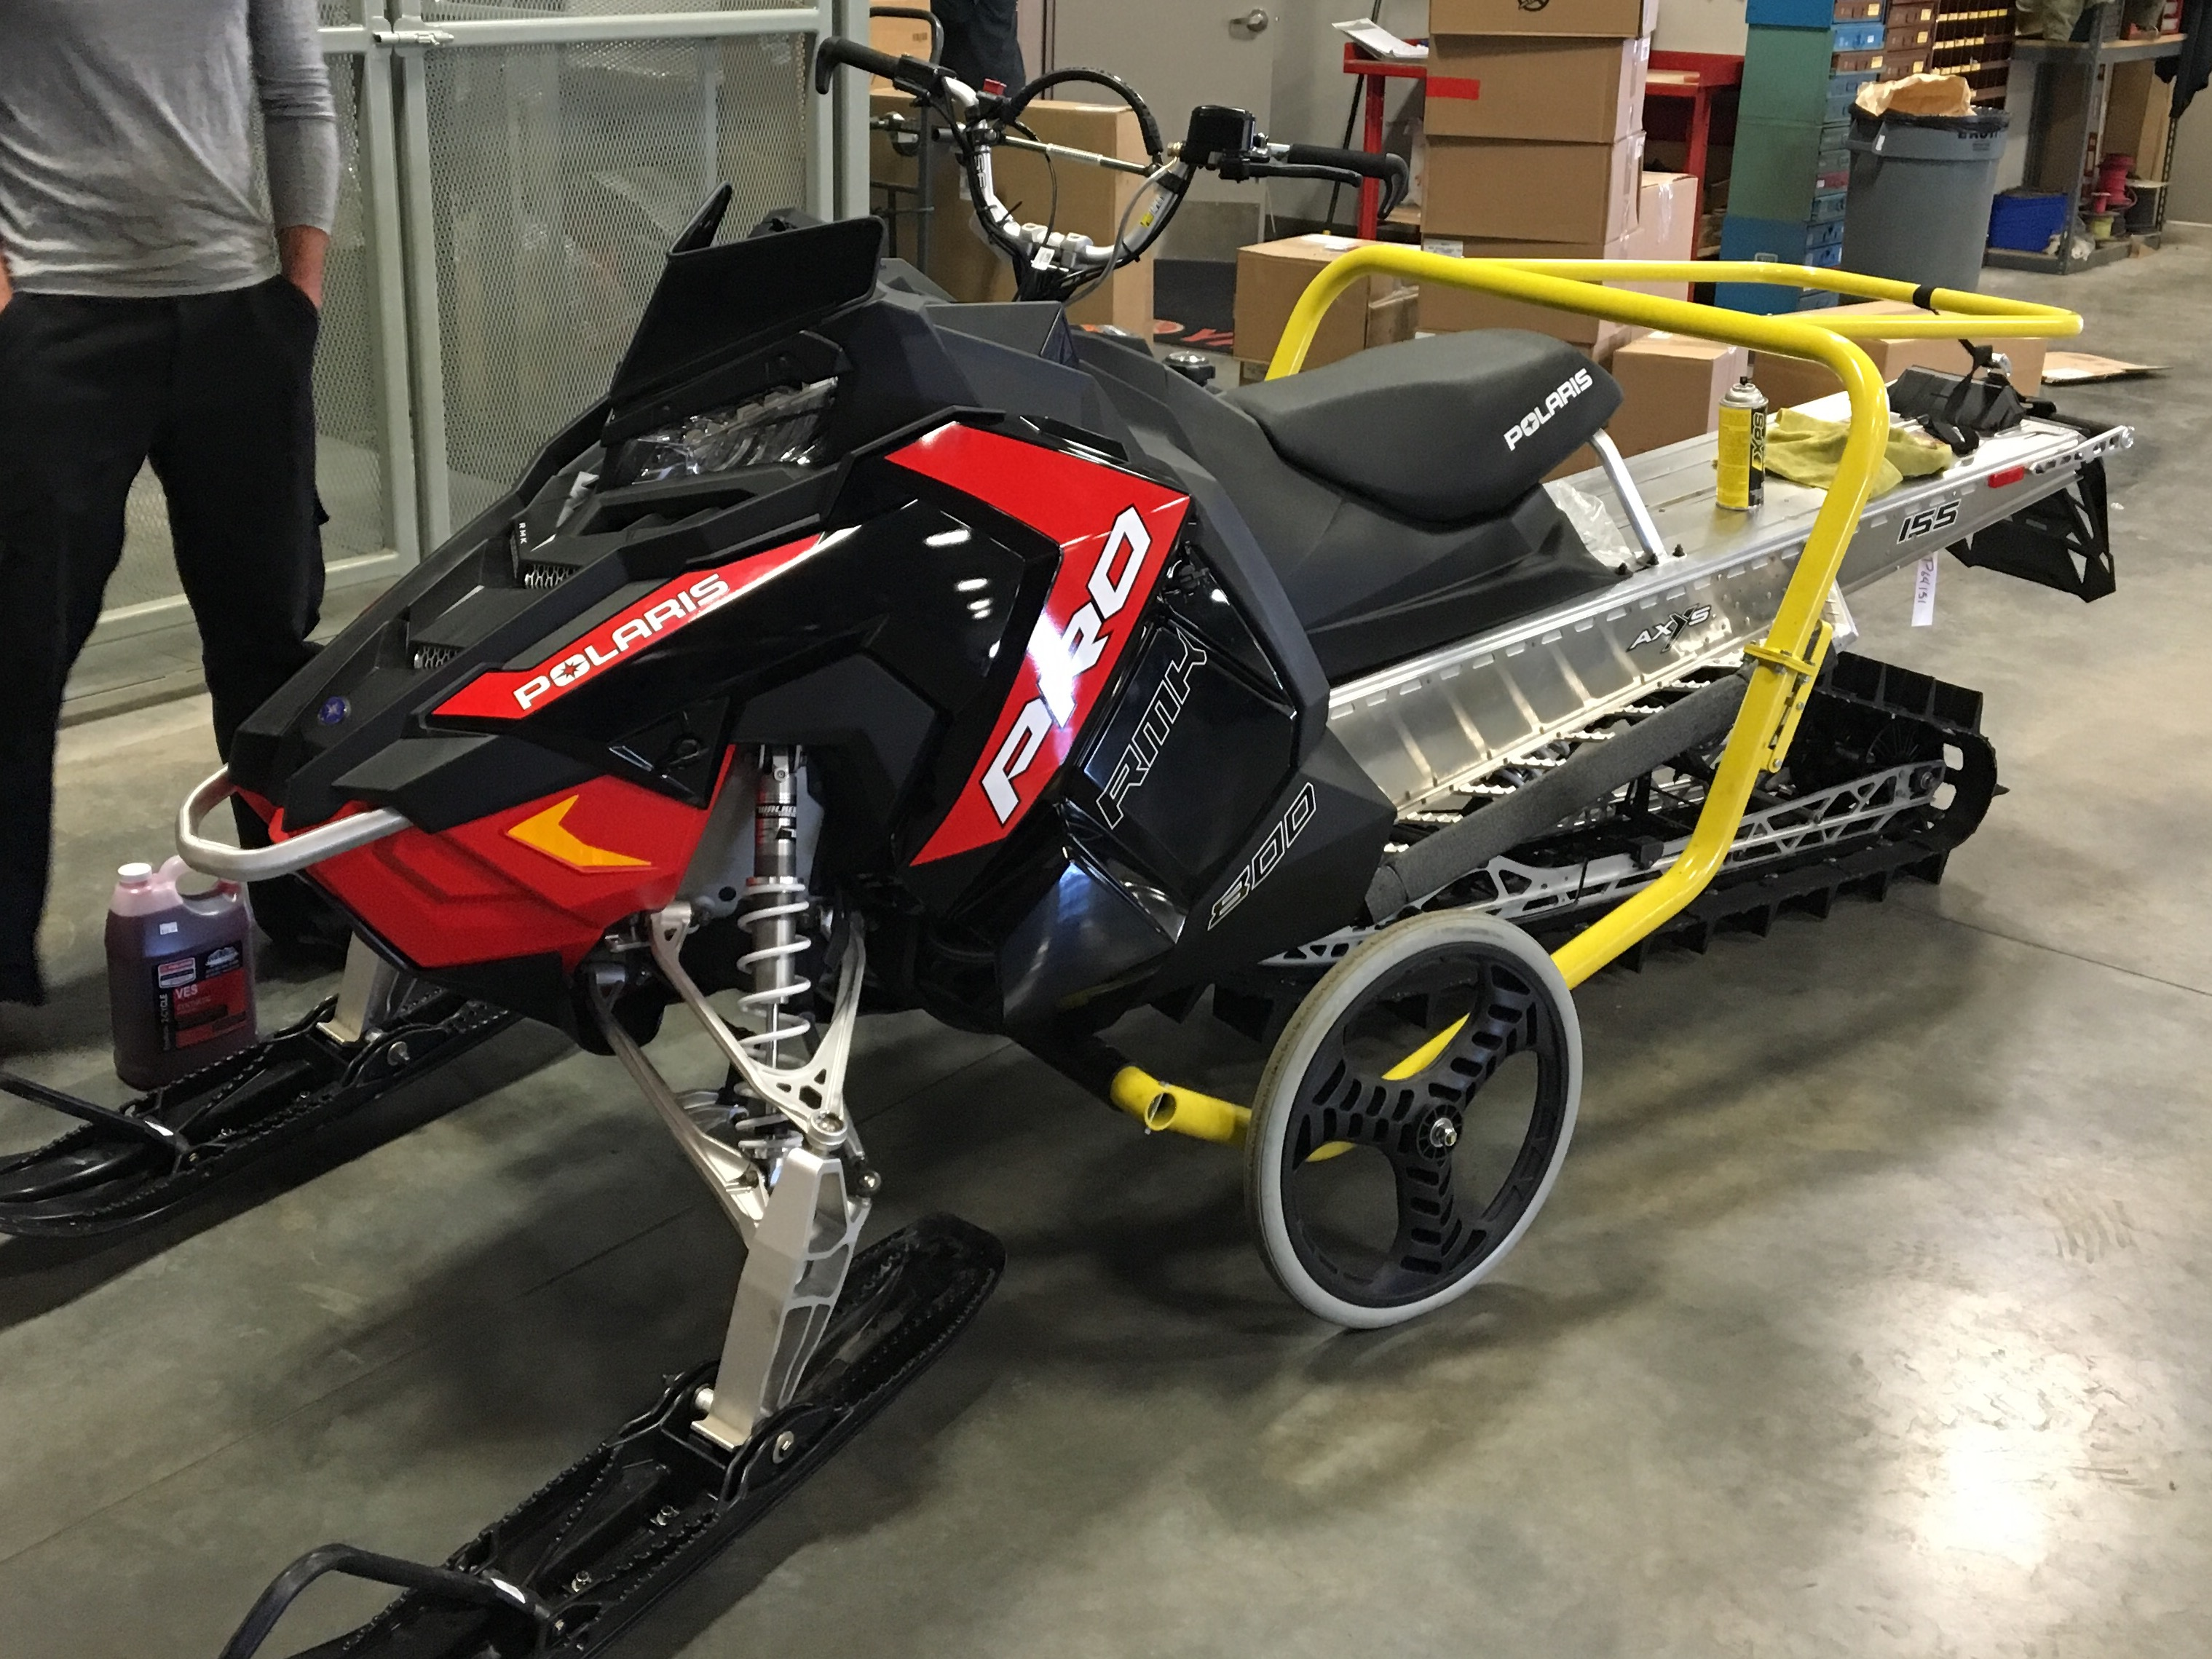 And The New Patented Raised Axys Rmk Chis Let Me Tell You It S Gonna Be Very Difficult To Find Words Describe How Amazing That Sled Is